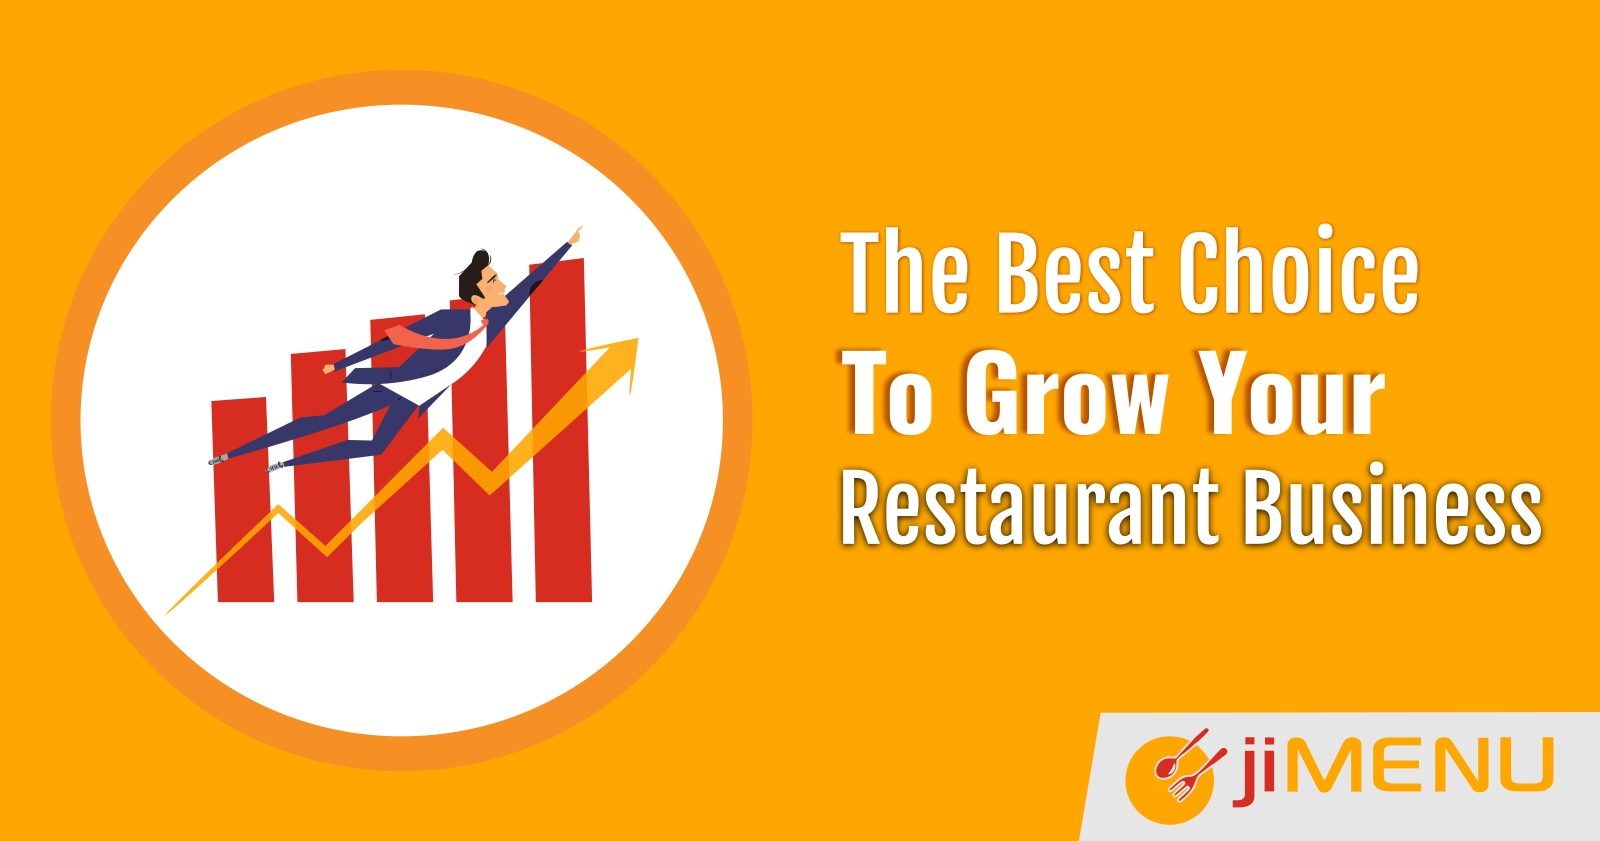 Restaurant POS Software: The Best Choice To Grow Your Restaurant Business